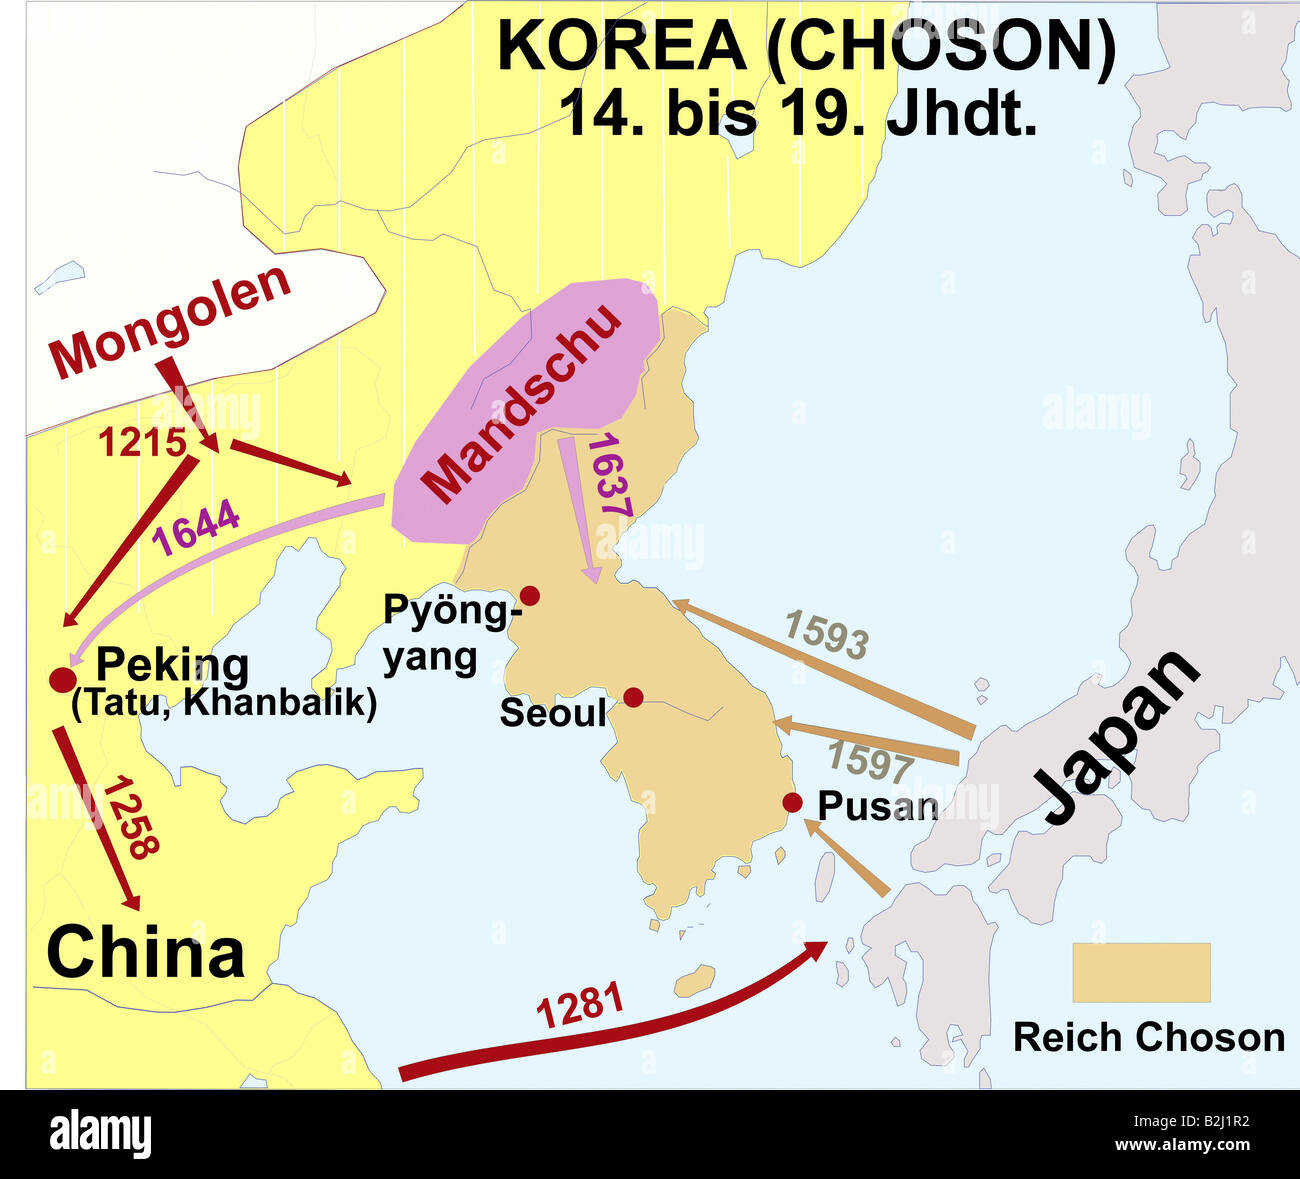 Geography Travel Carthography Historical Maps Modern Times – Asia Map Korea